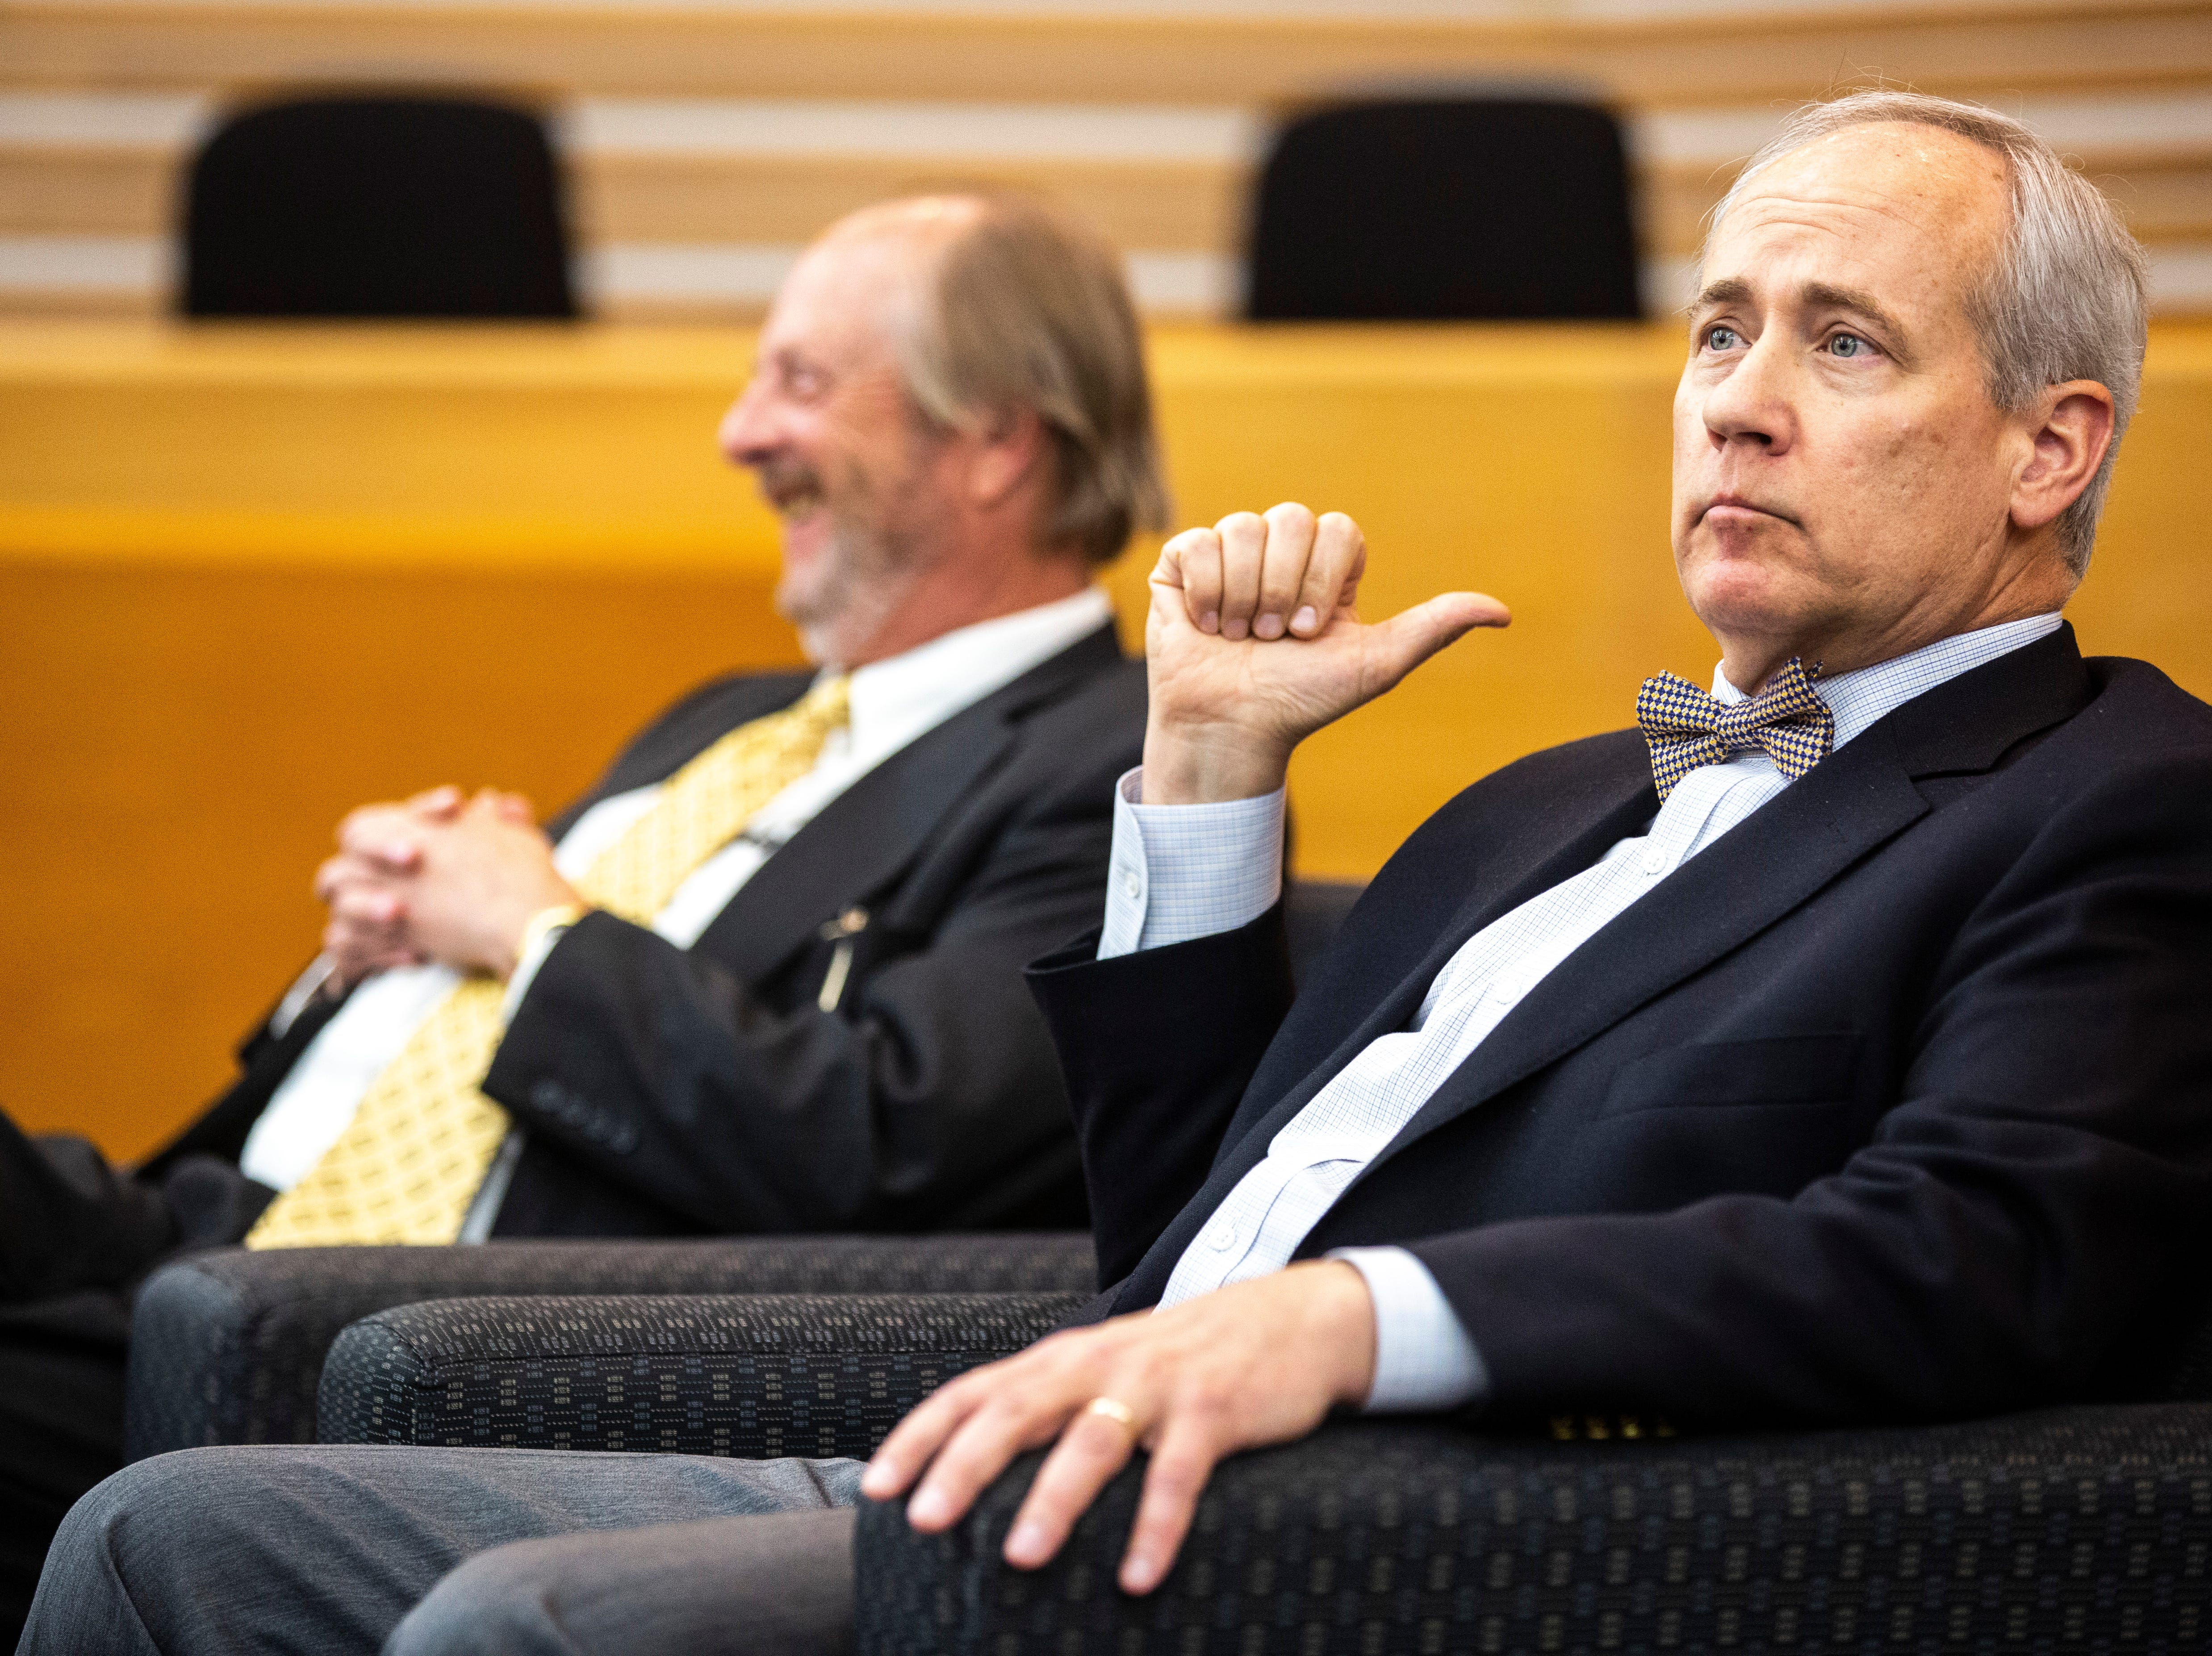 District 5 Judge Robert B. Hanson, right, listens during a panel with former Iowa Supreme Court Justice David L. Baker regarding the Varnum v. Brien Iowa Supreme Court decision, Thursday, April 18, 2019, in the Boyd Law Building on the University of Iowa campus in Iowa City, Iowa.